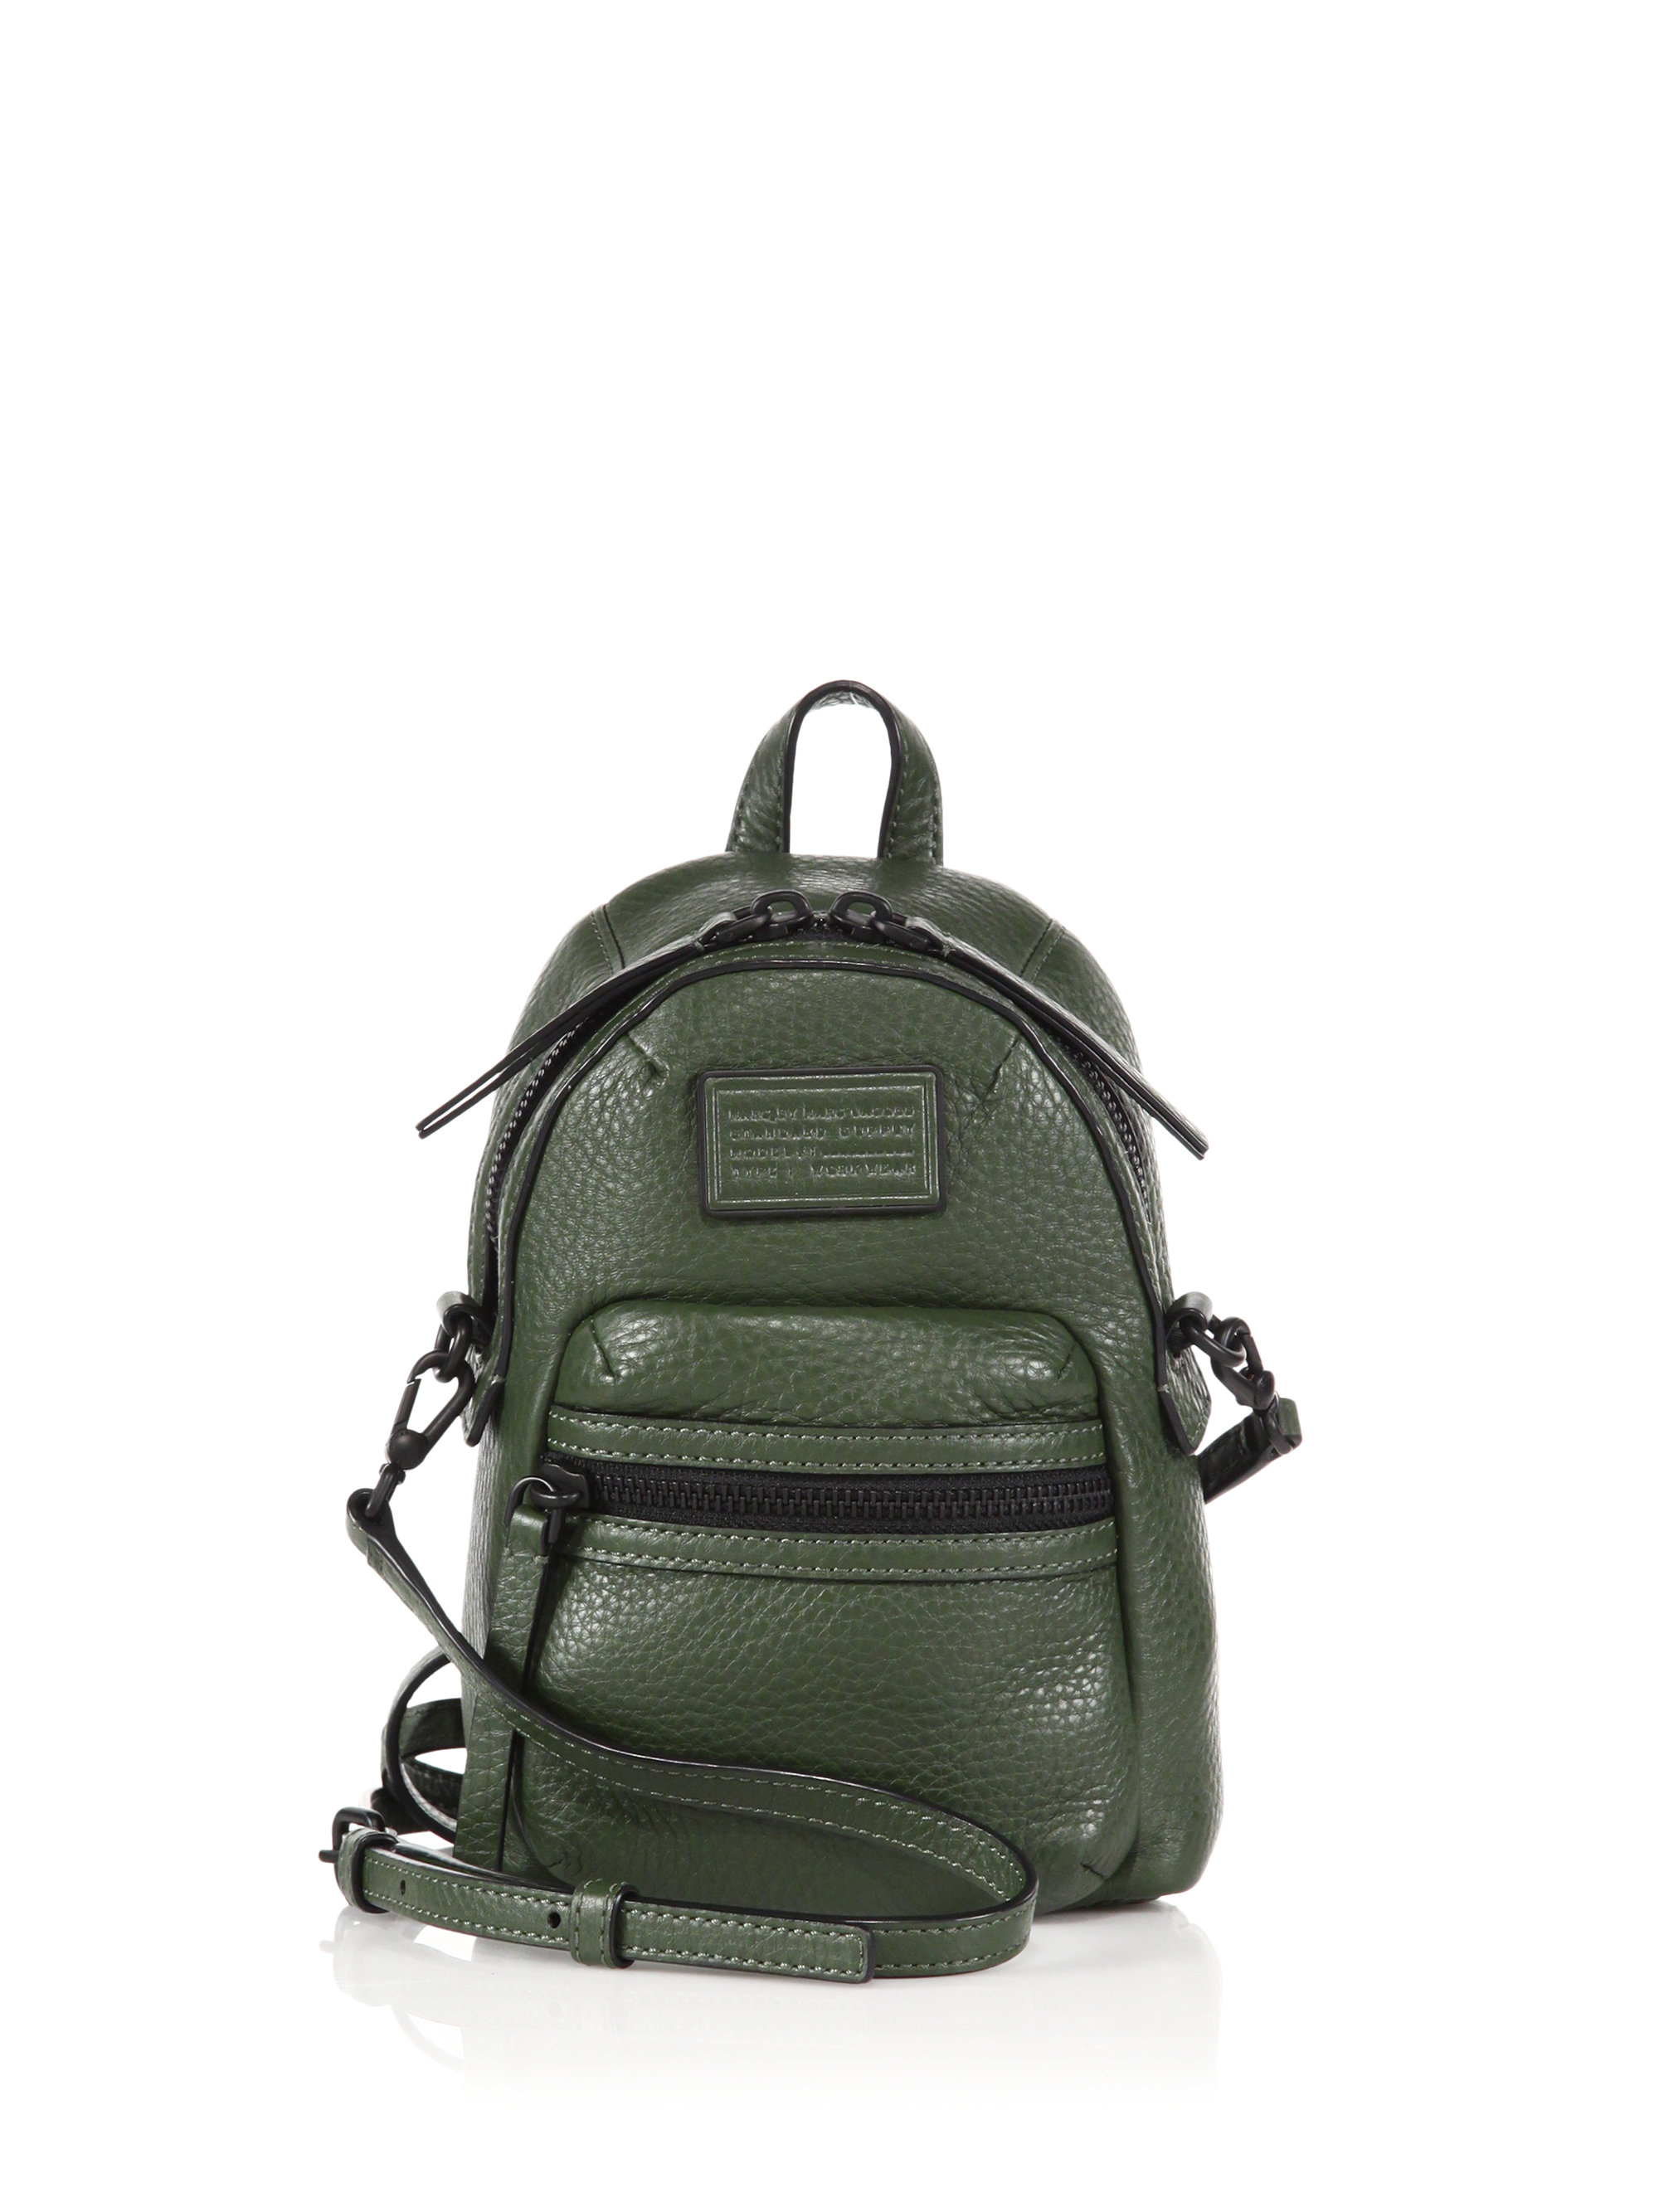 dad3bc3b5273 Lyst - Marc By Marc Jacobs Domo Biker Mini Leather Backpack in Green